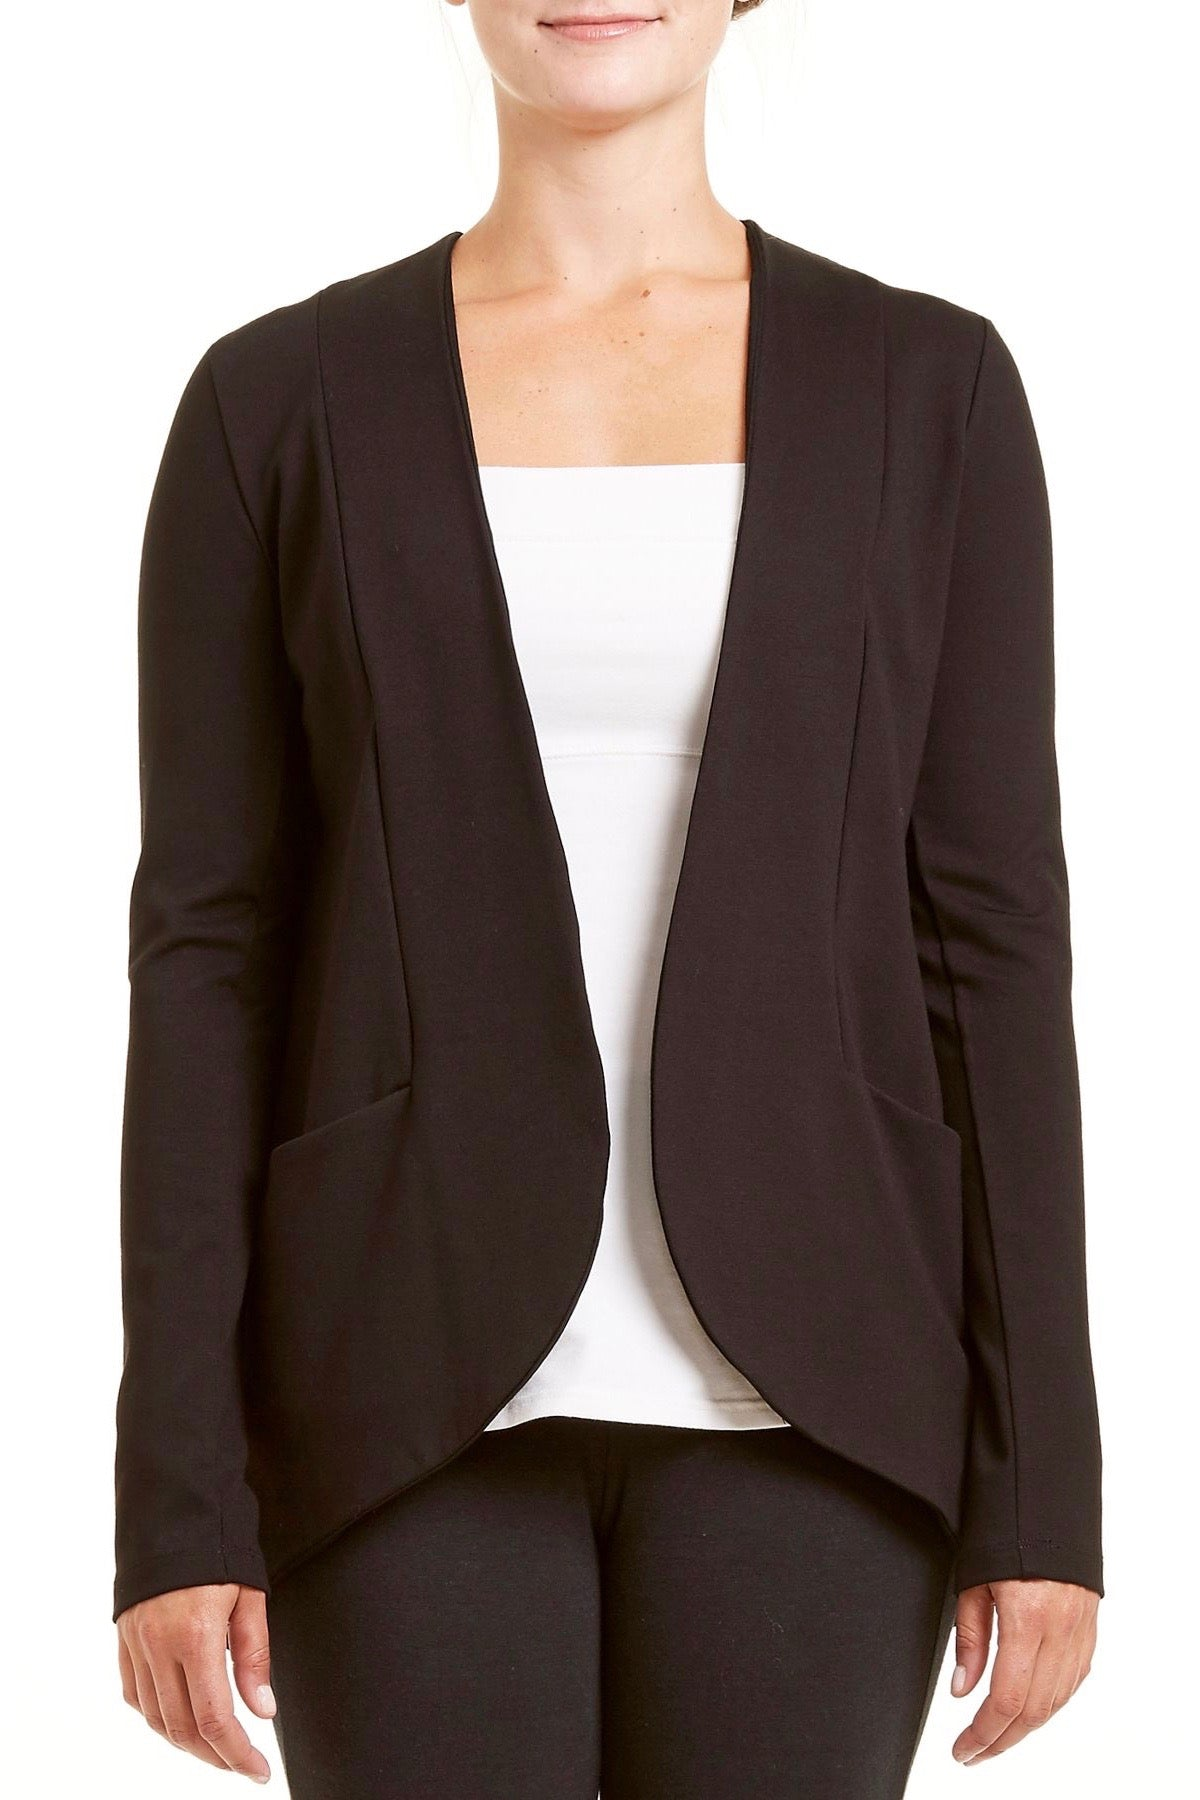 PIF Blazer by Fig Clothing, Black, Ponte di Roma, princess seams, rounded hemline, sizes XS to XL